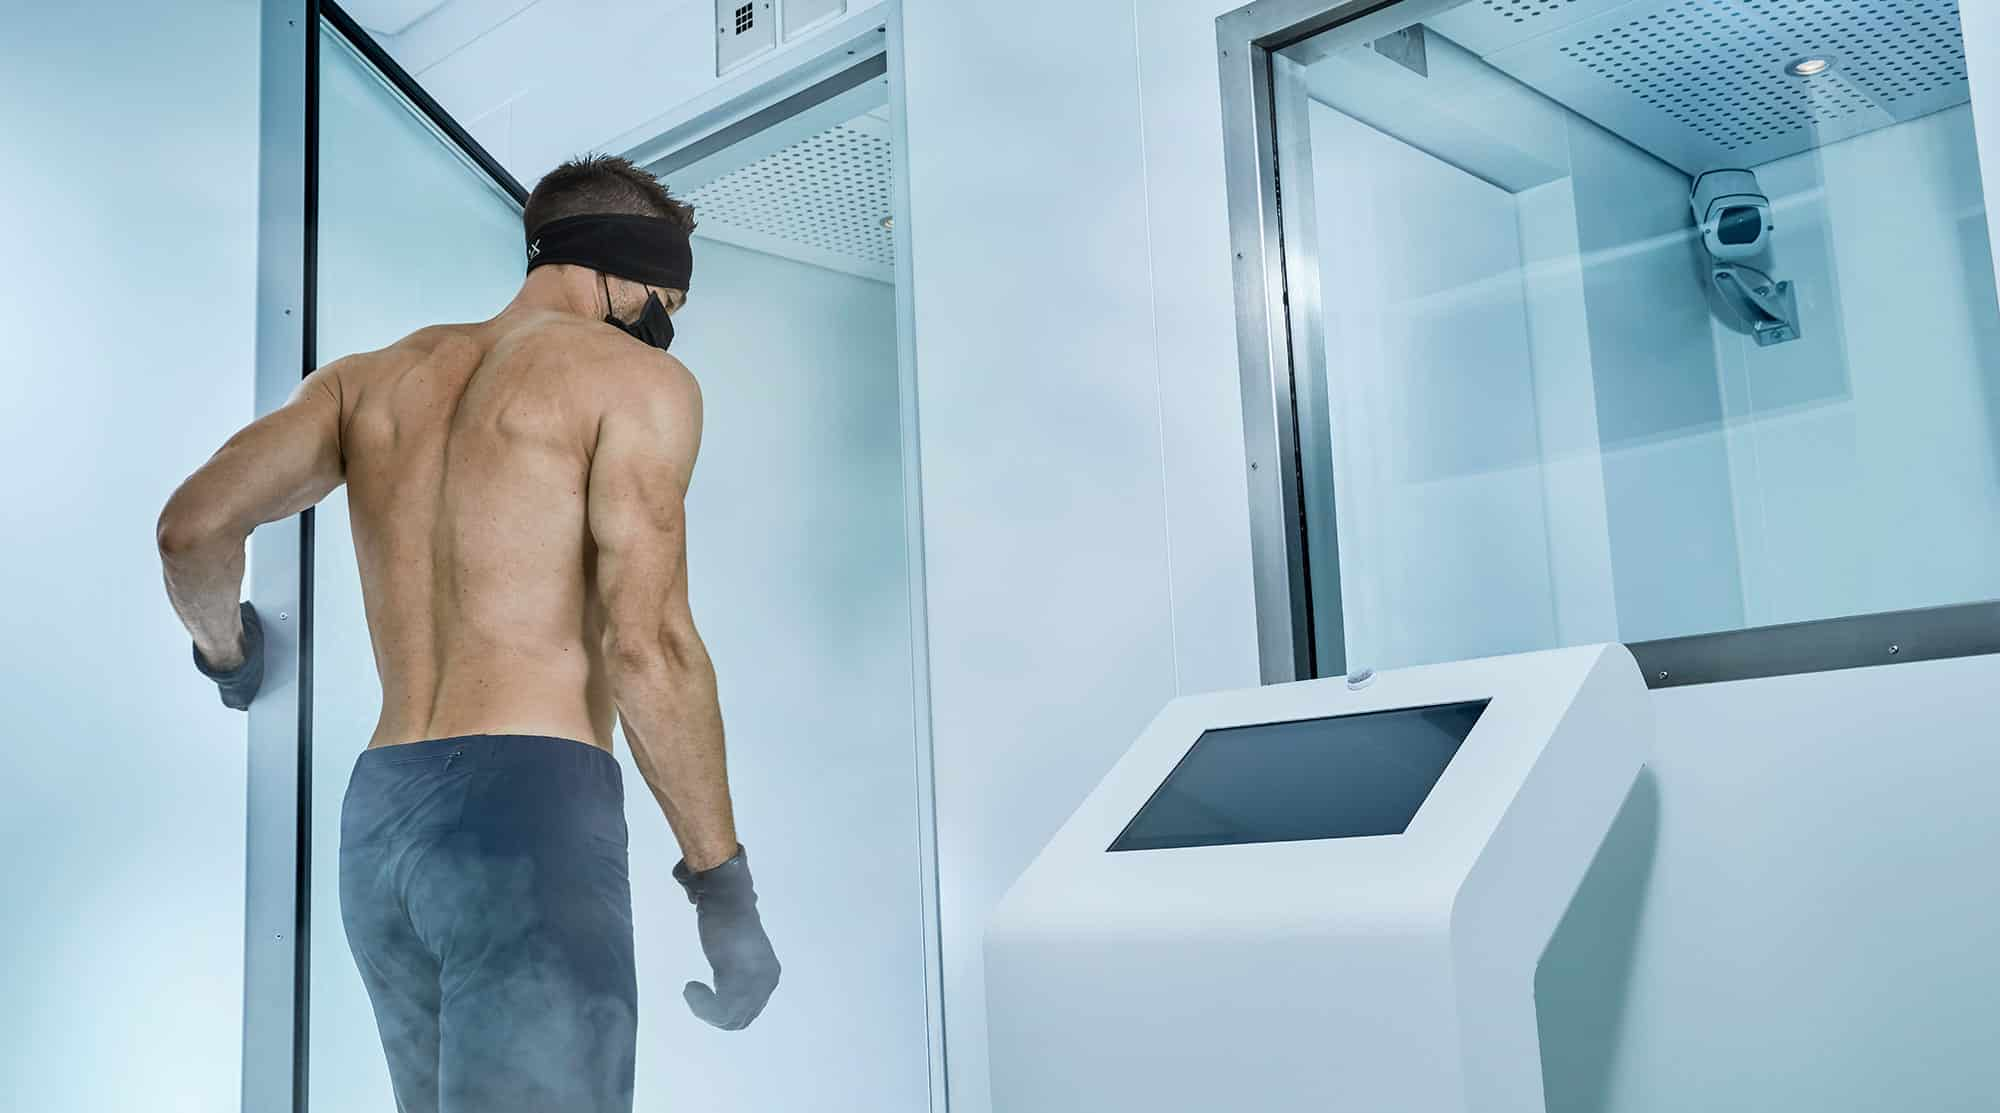 Man going in the cryotherapy room